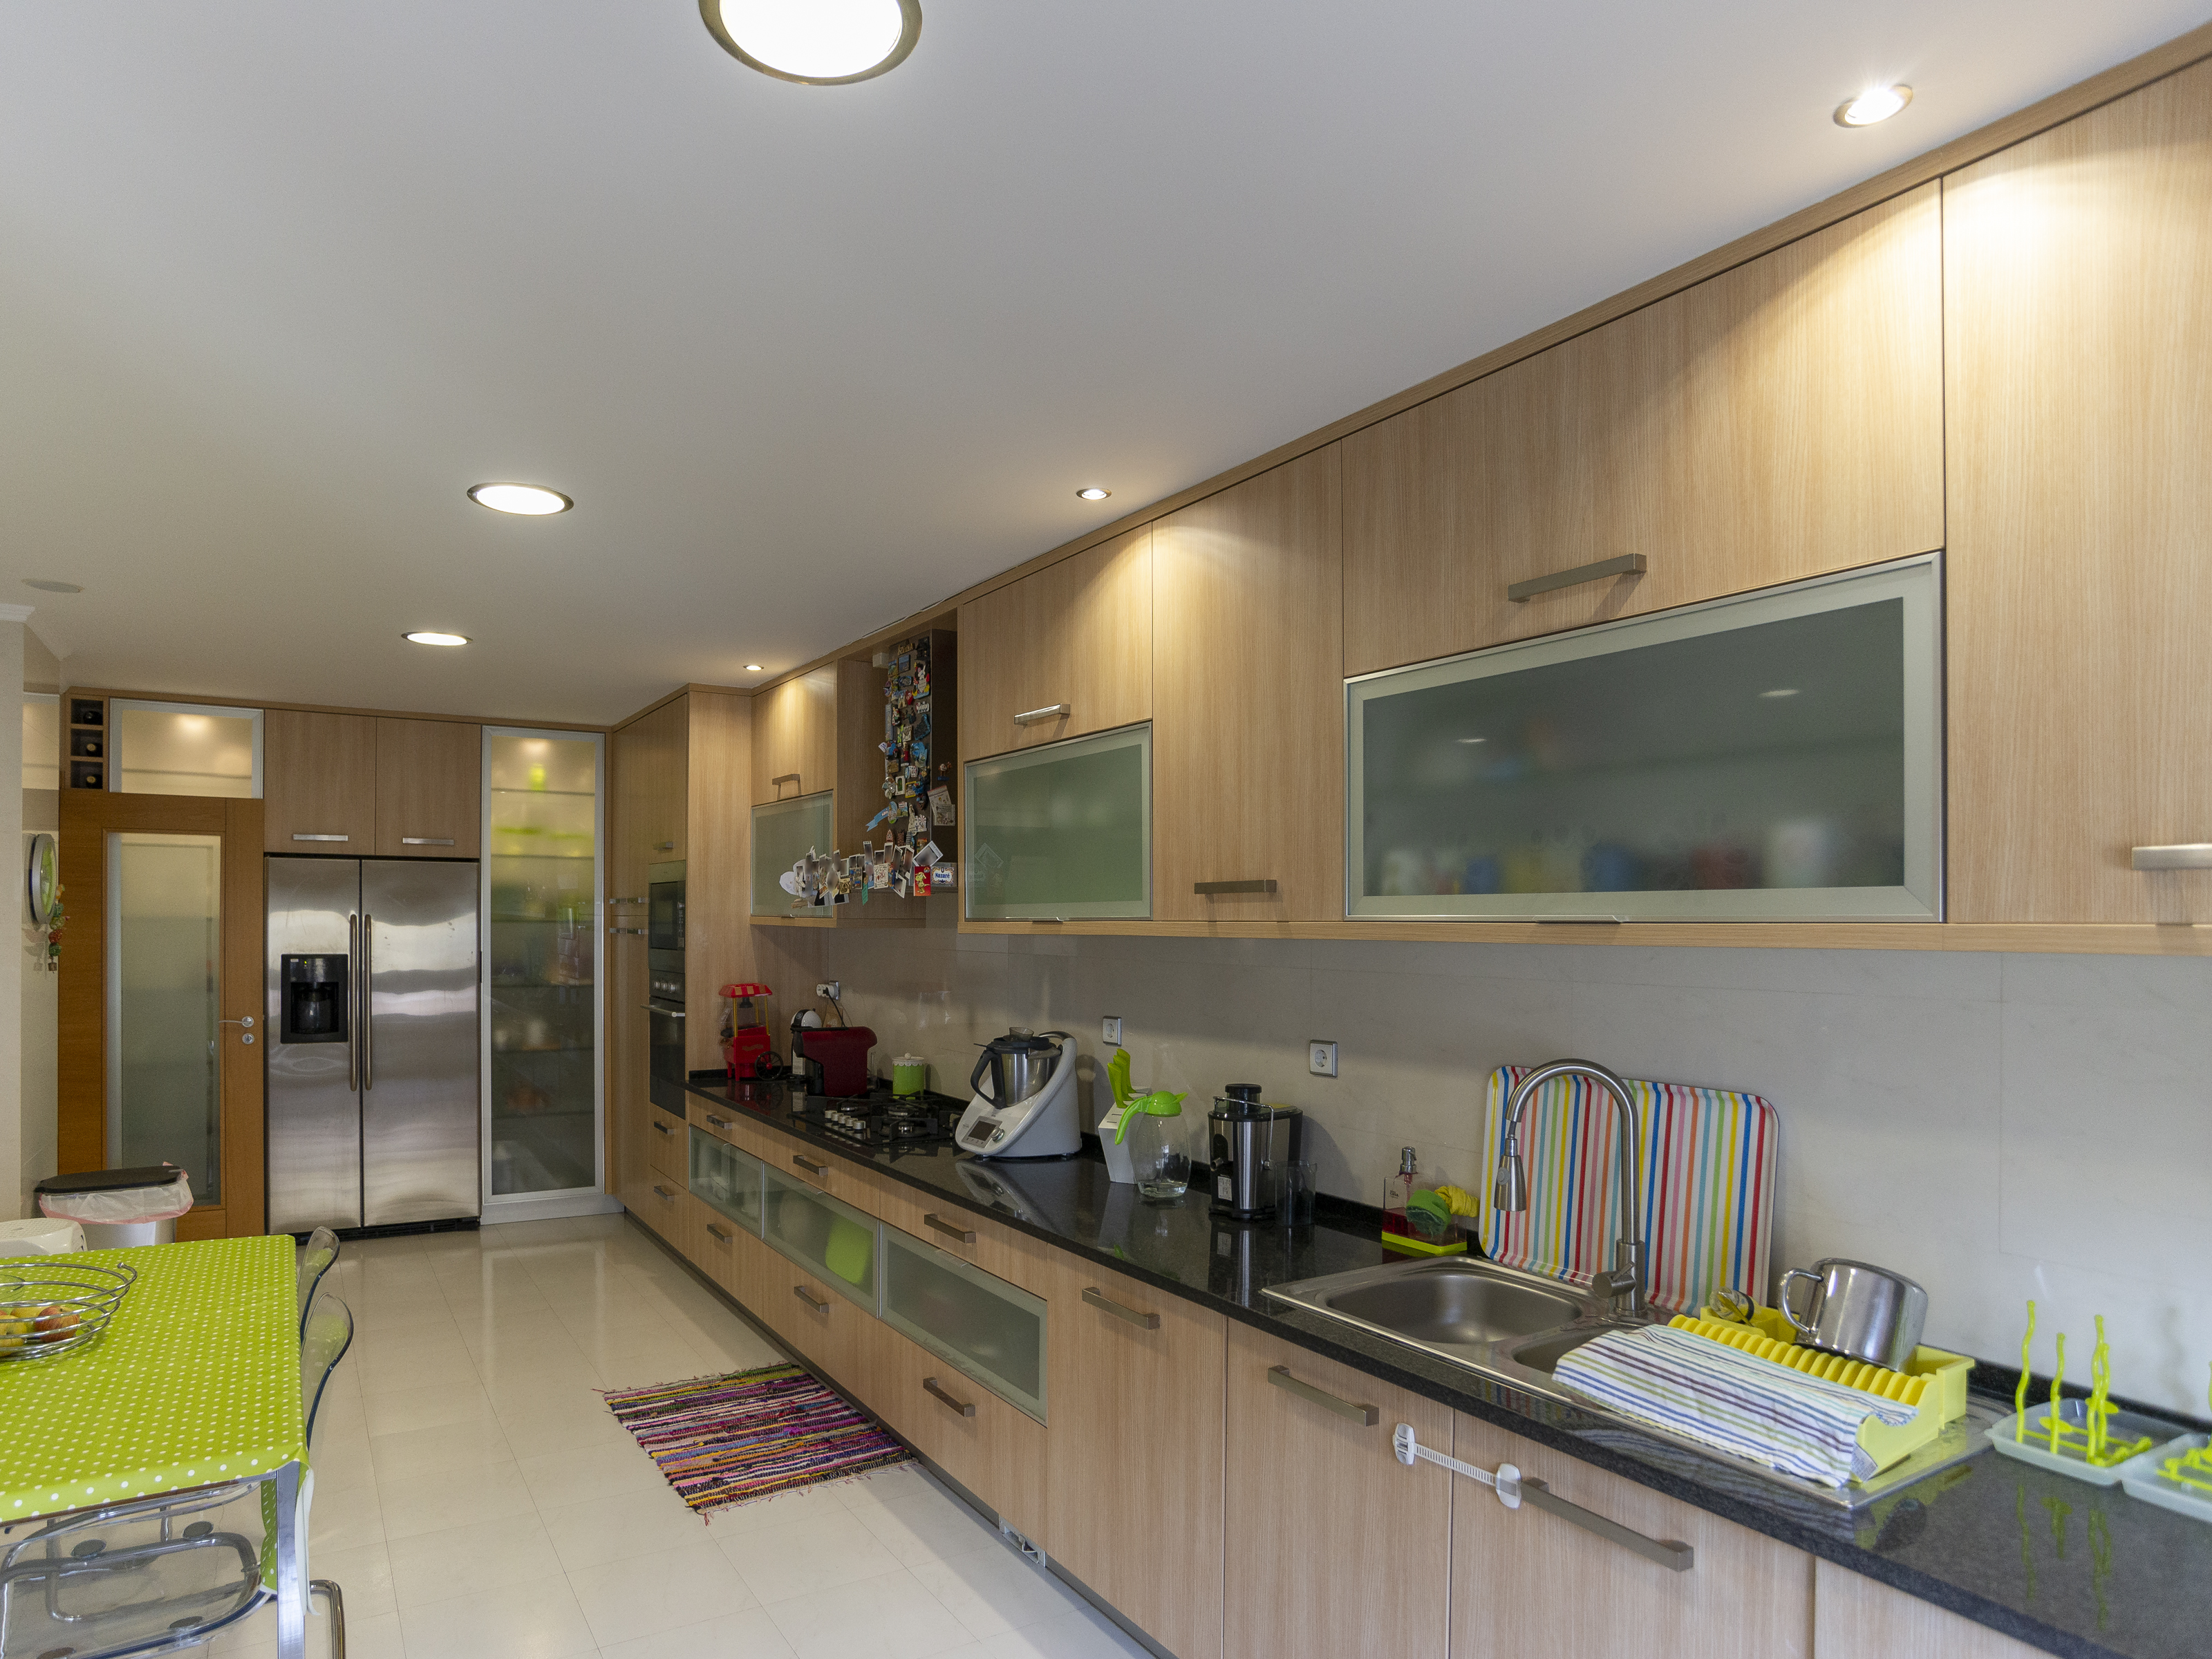 3 bedroom apartment in Atalaia